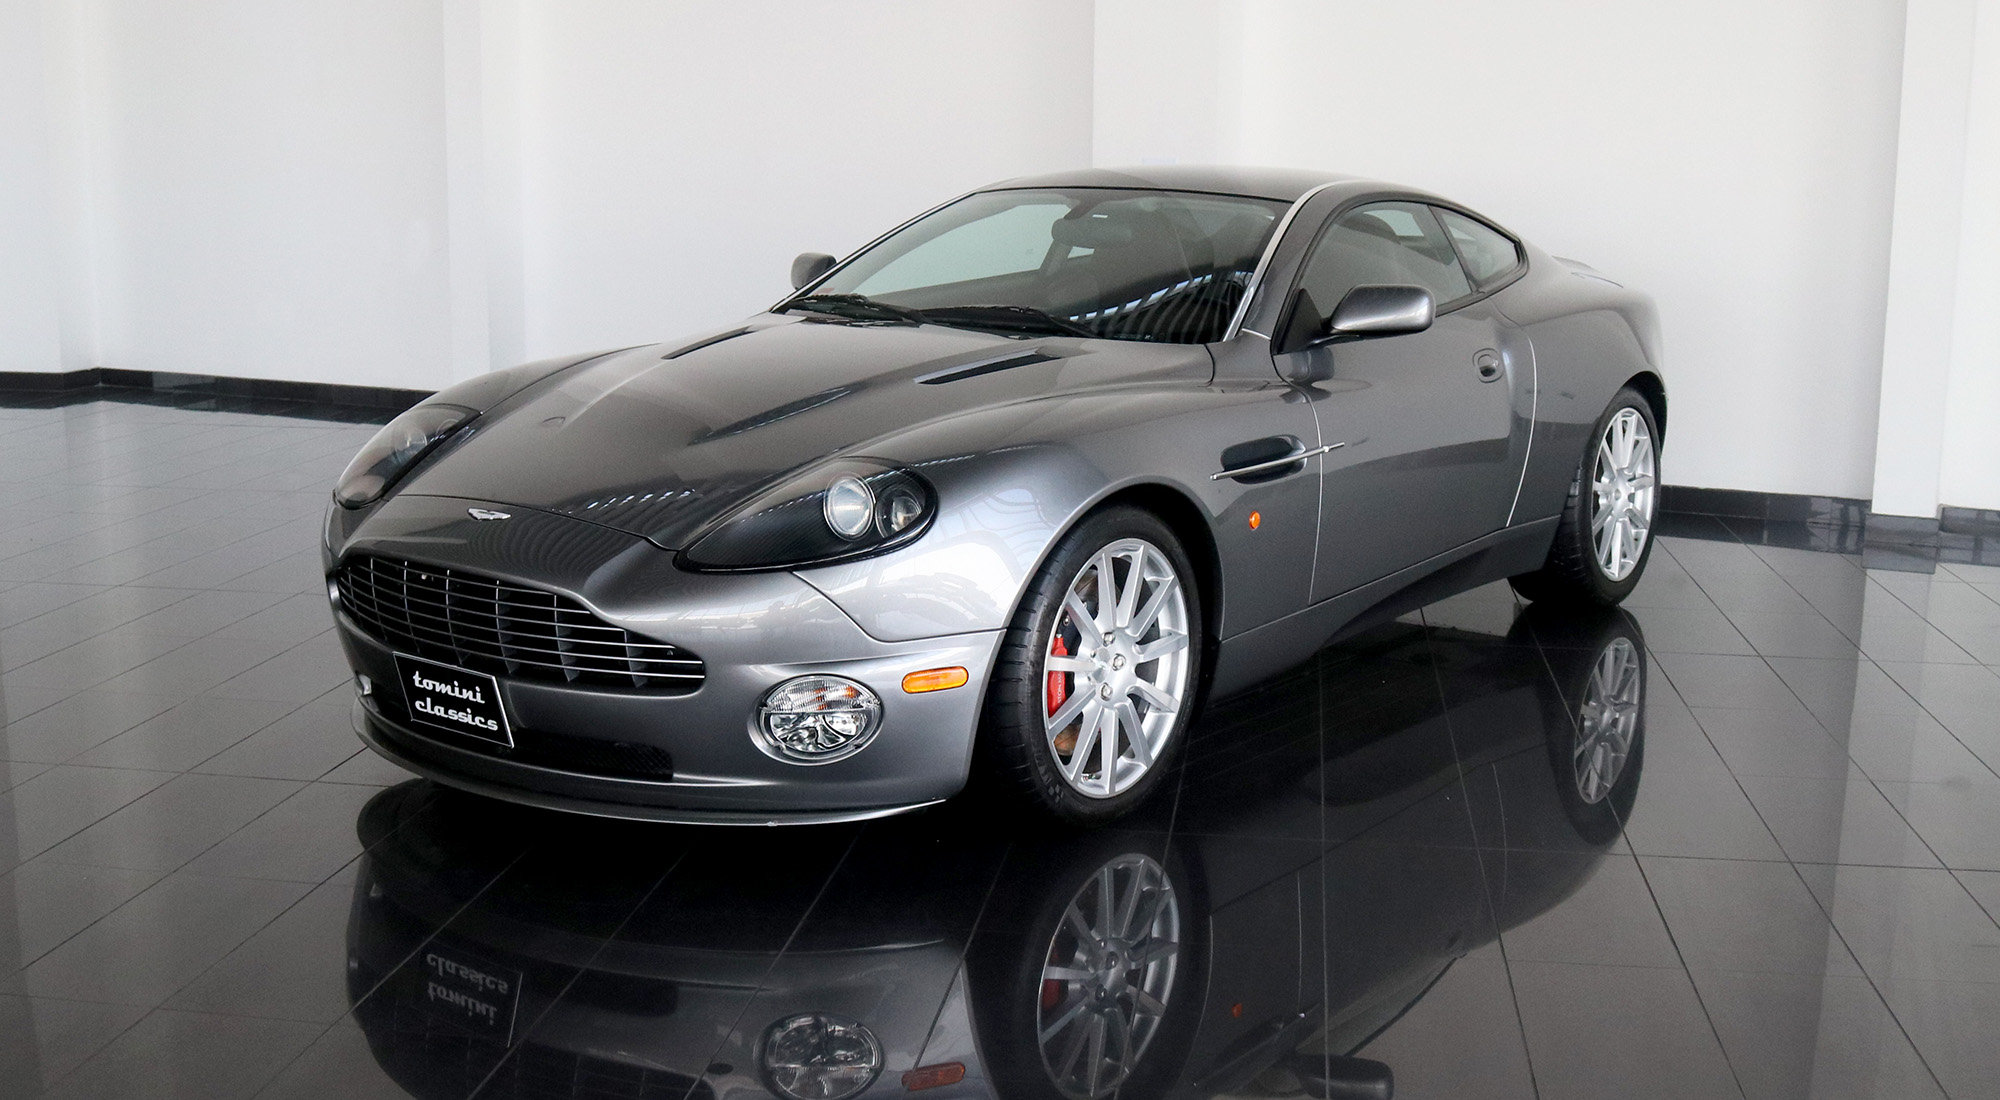 Aston Martin Vanquish S (2005) For Sale (picture 2 of 6)